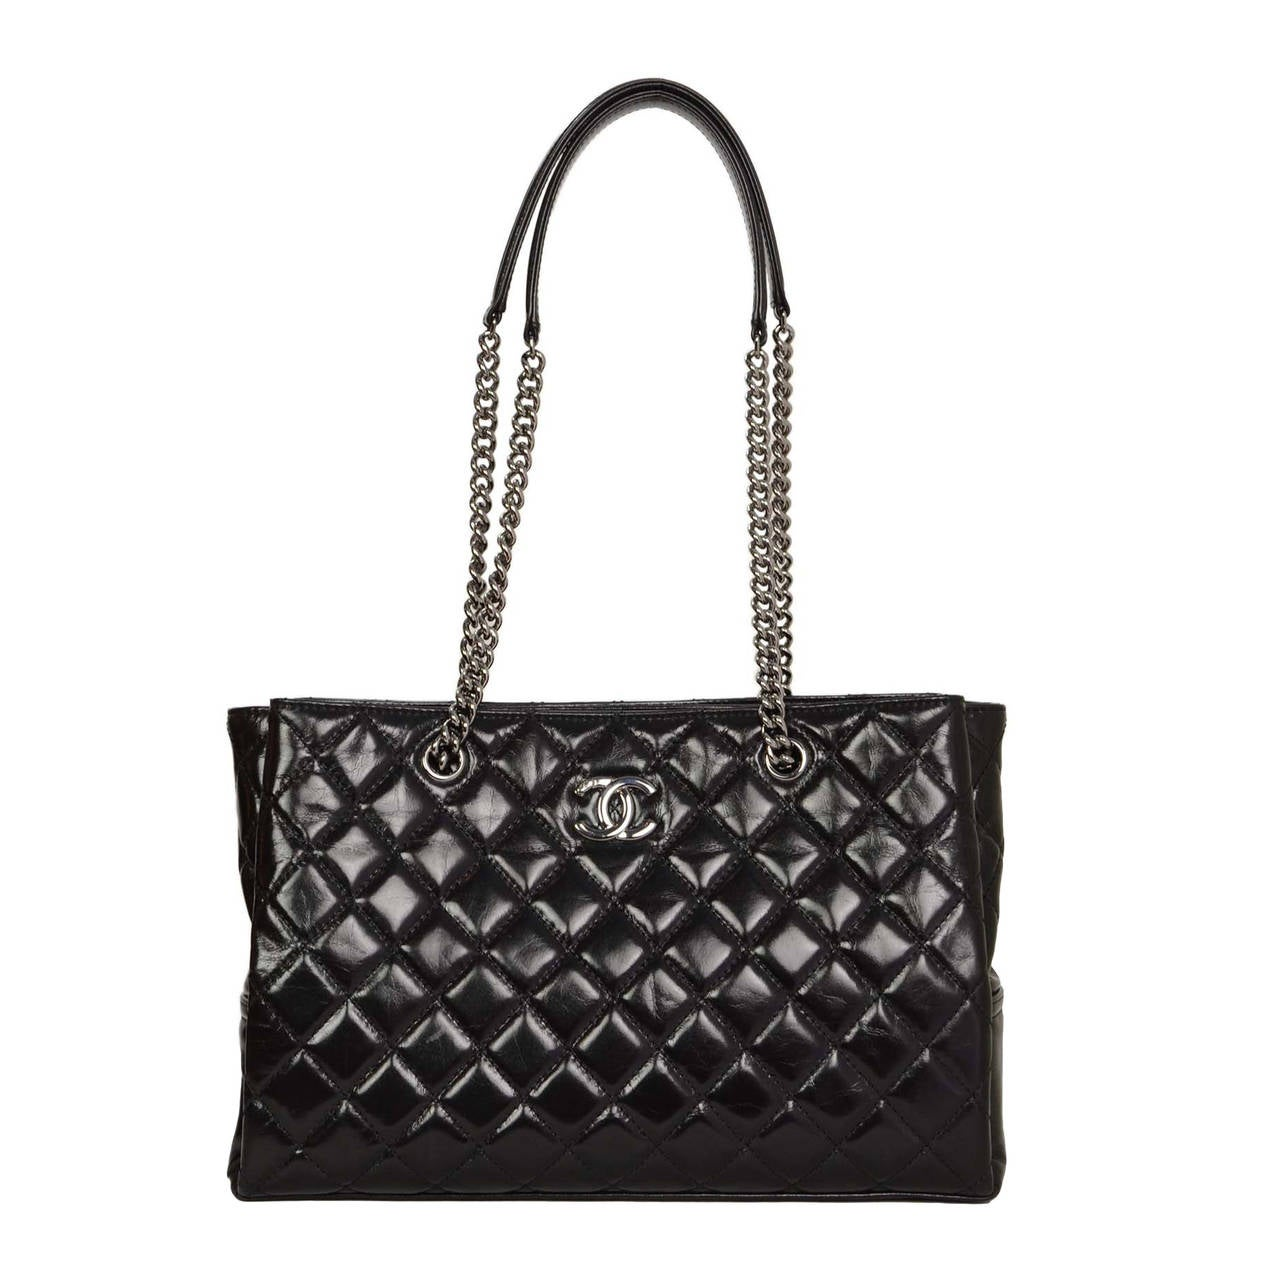 CHANEL 2015 Black Glazed Quilted Leather Shopper Tote Bag RHW at 1stdibs 0f399723bf